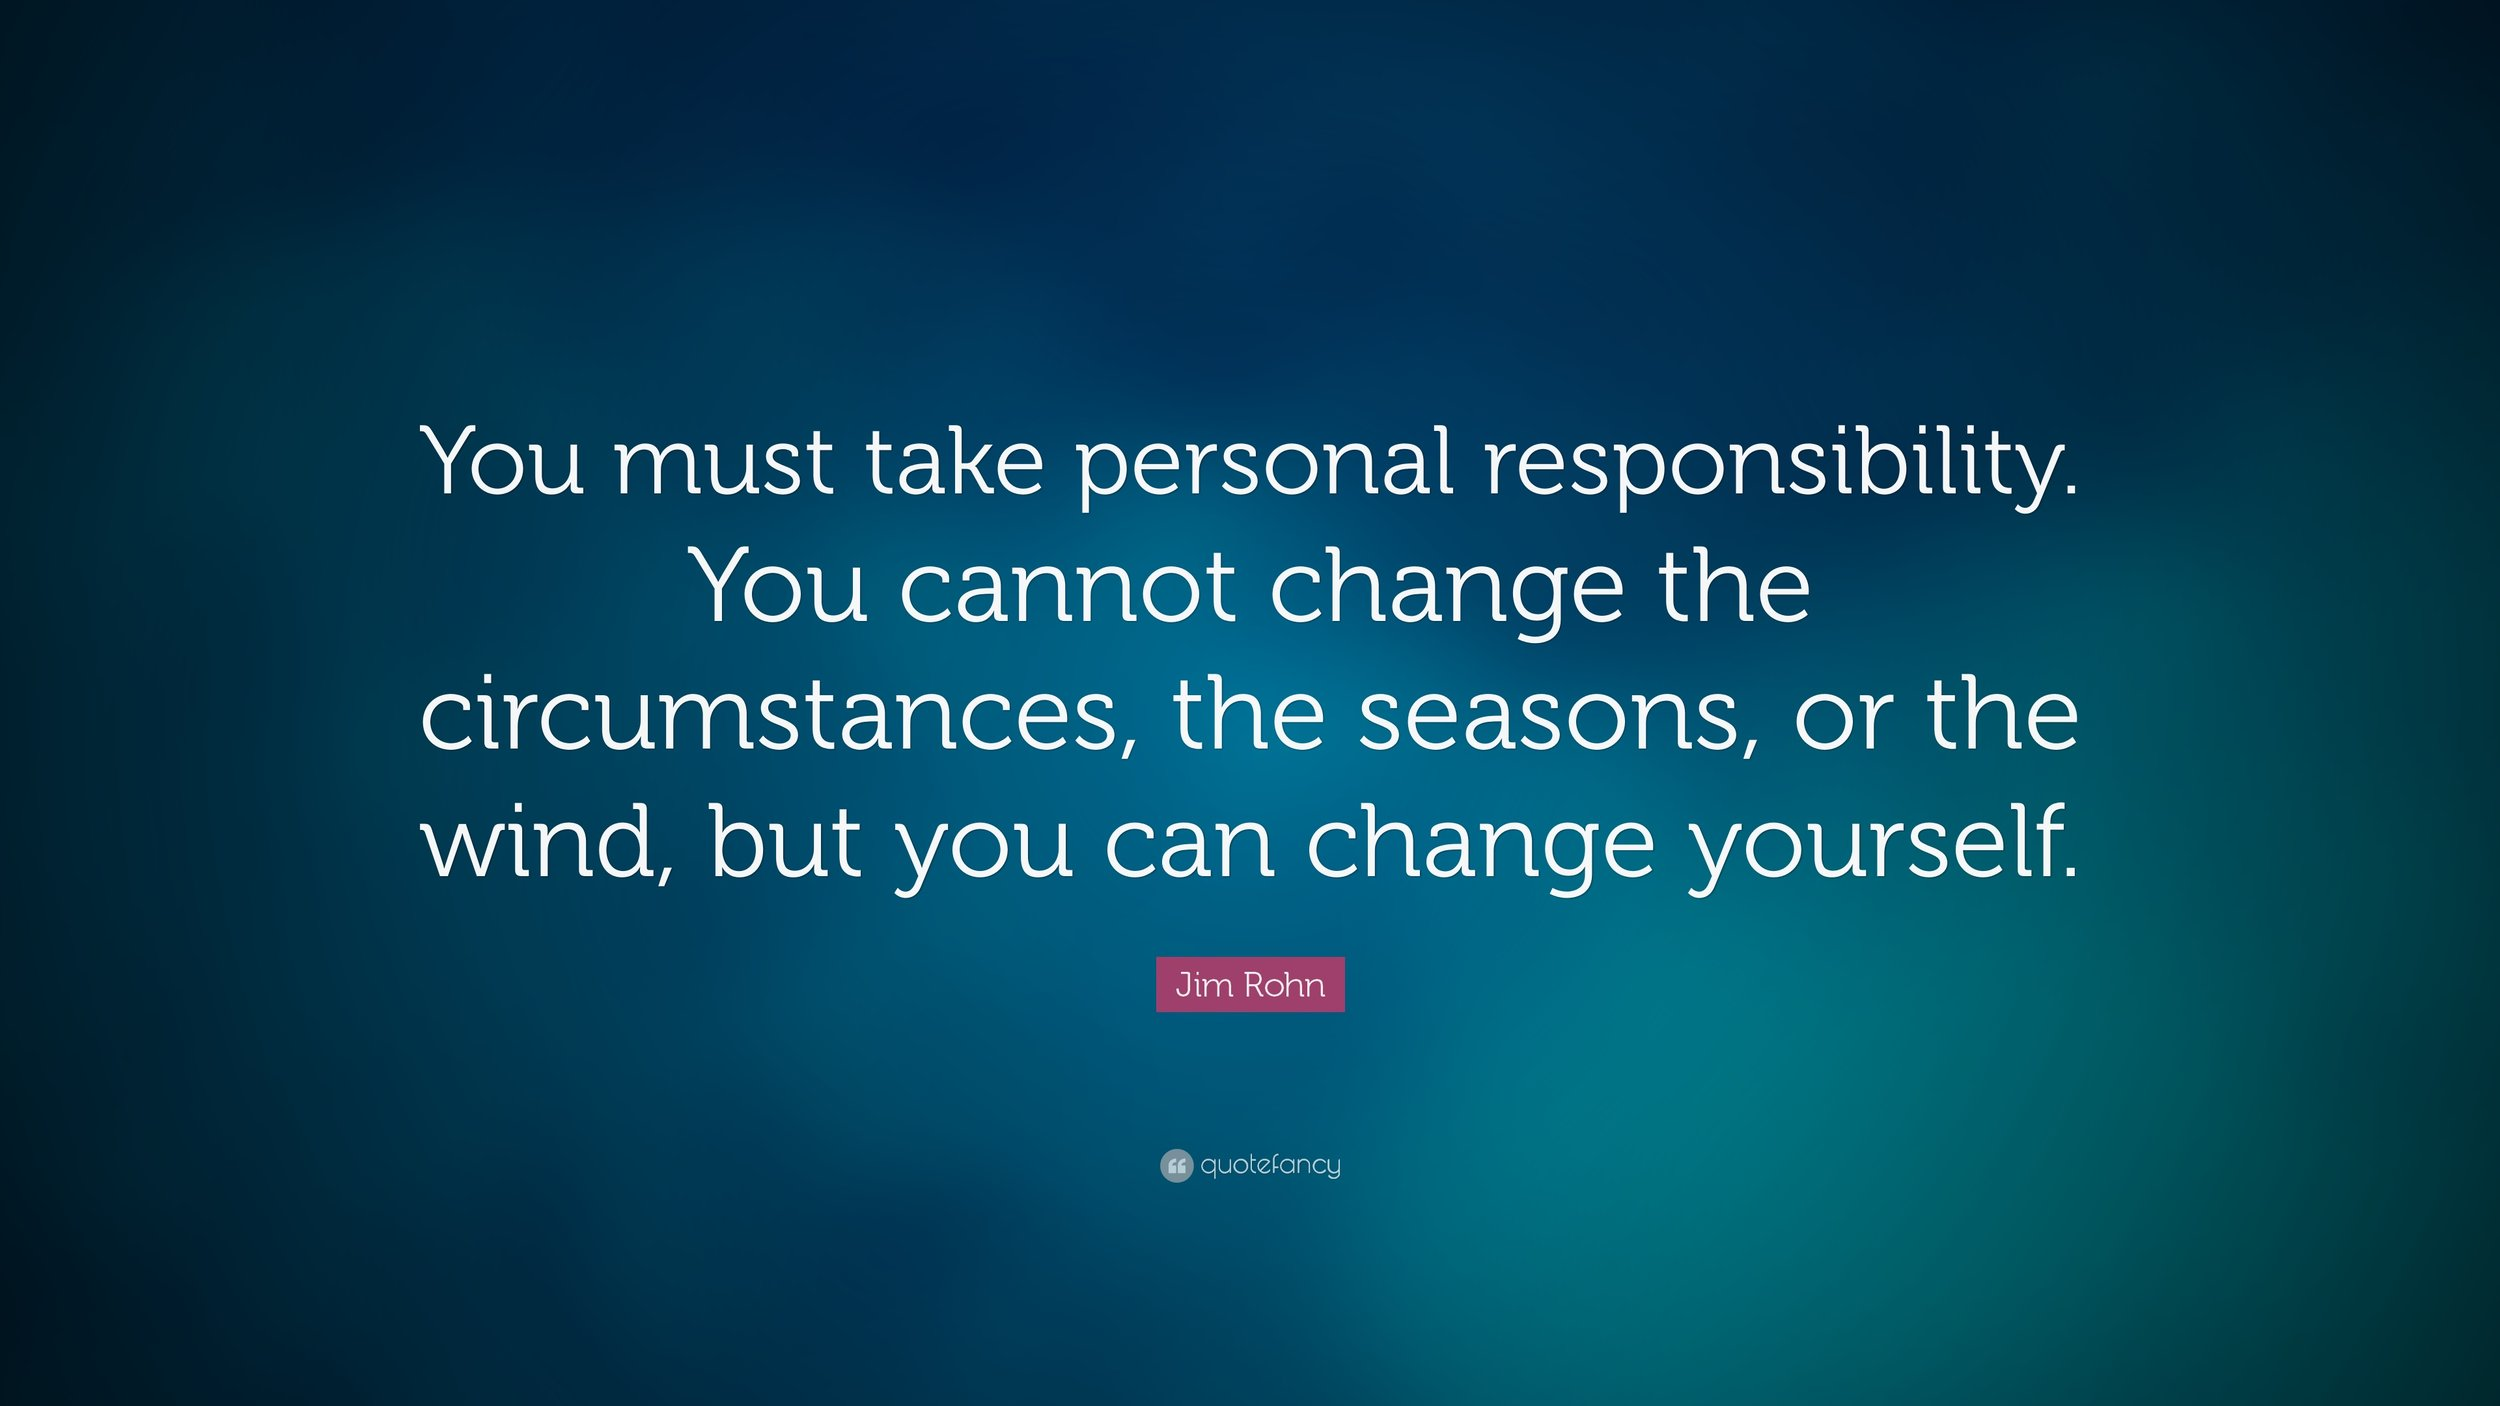 15063-Jim-Rohn-Quote-You-must-take-personal-responsibility-You-cannot.jpg